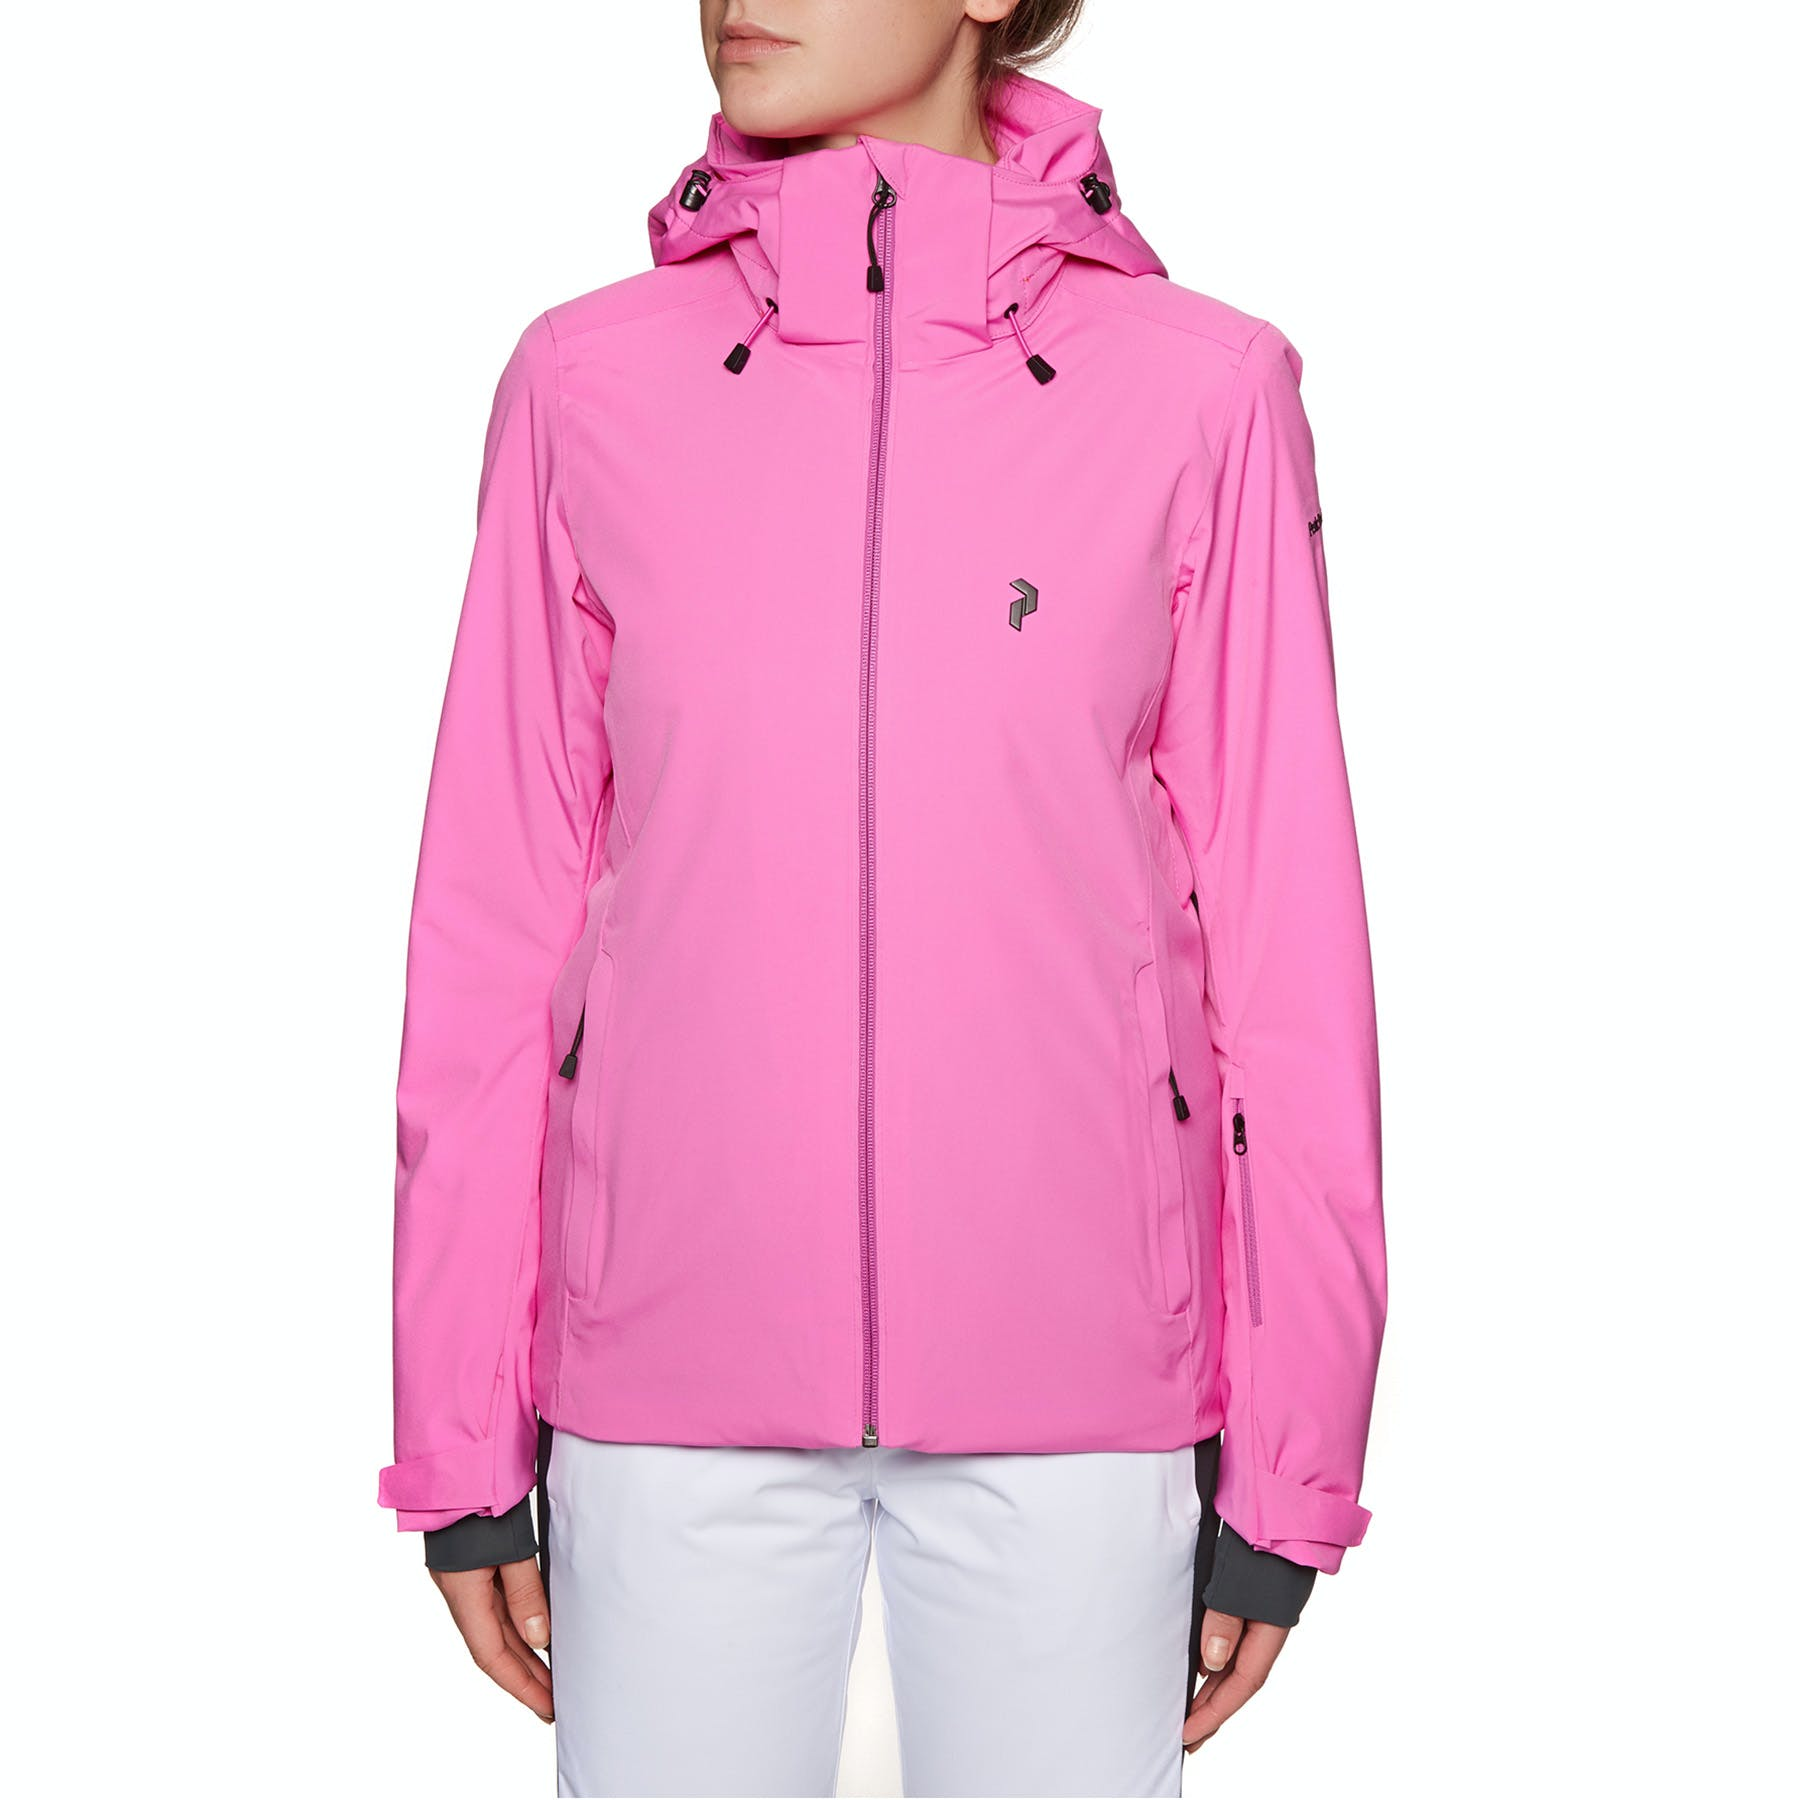 cheap for discount fbef3 82689 Peak Performance Anima J Jacket - Free Delivery options on All Orders from  Surfdome UK